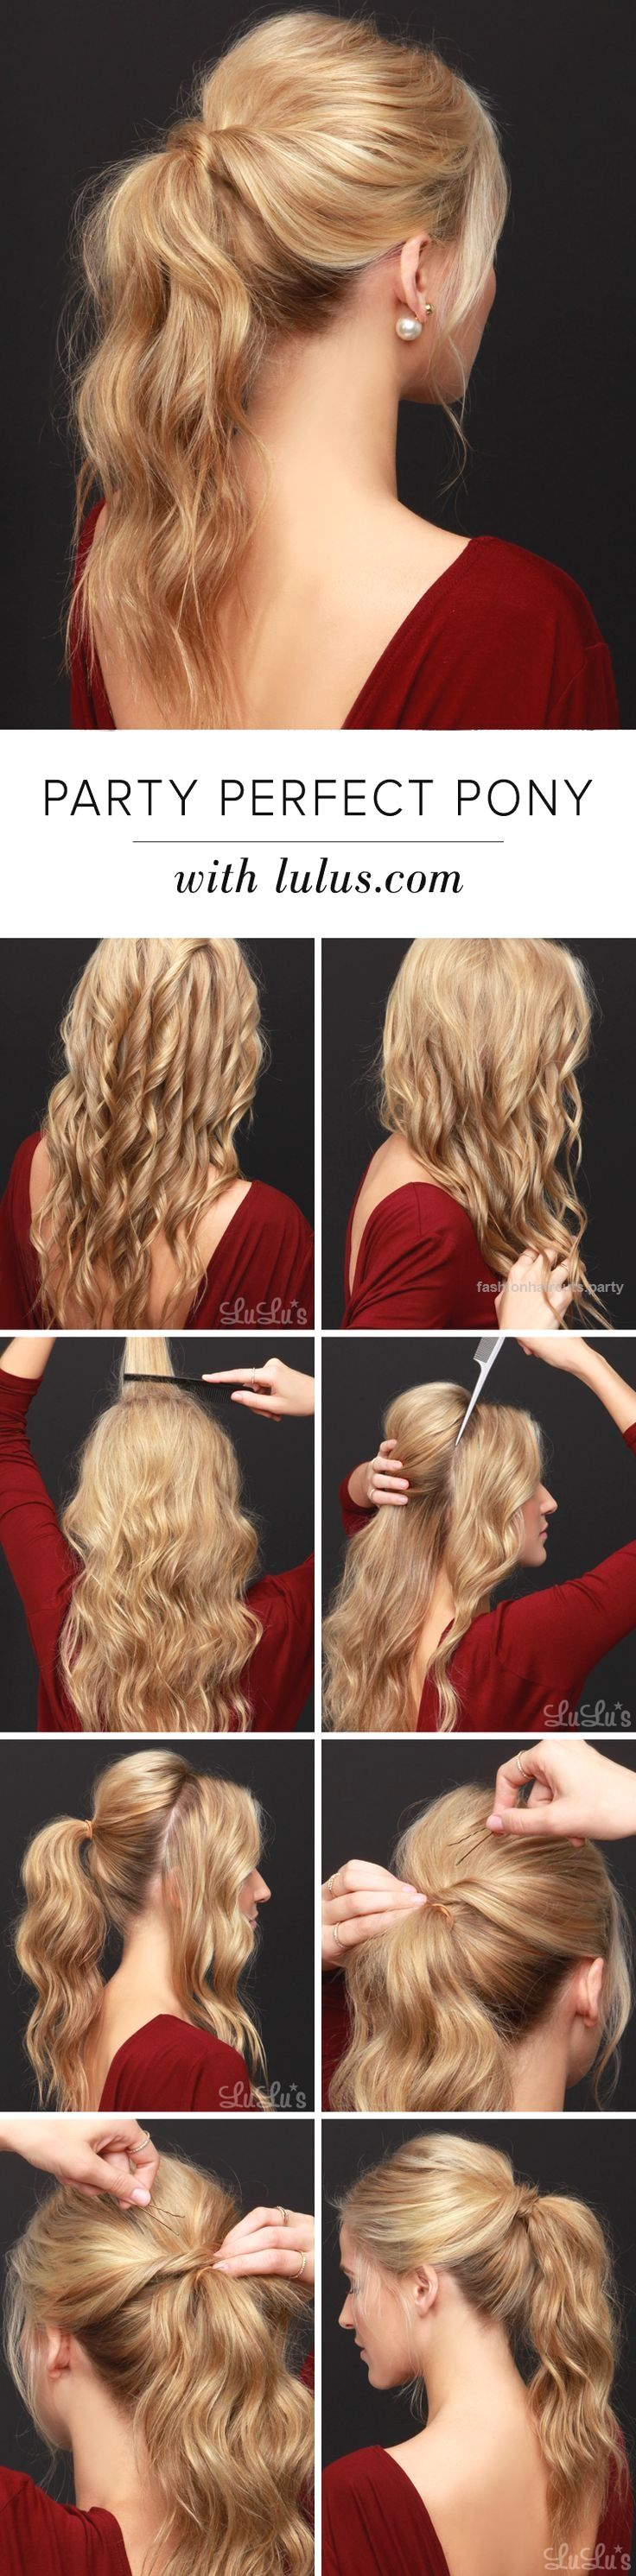 491 best Easy Hairstyles images on Pinterest